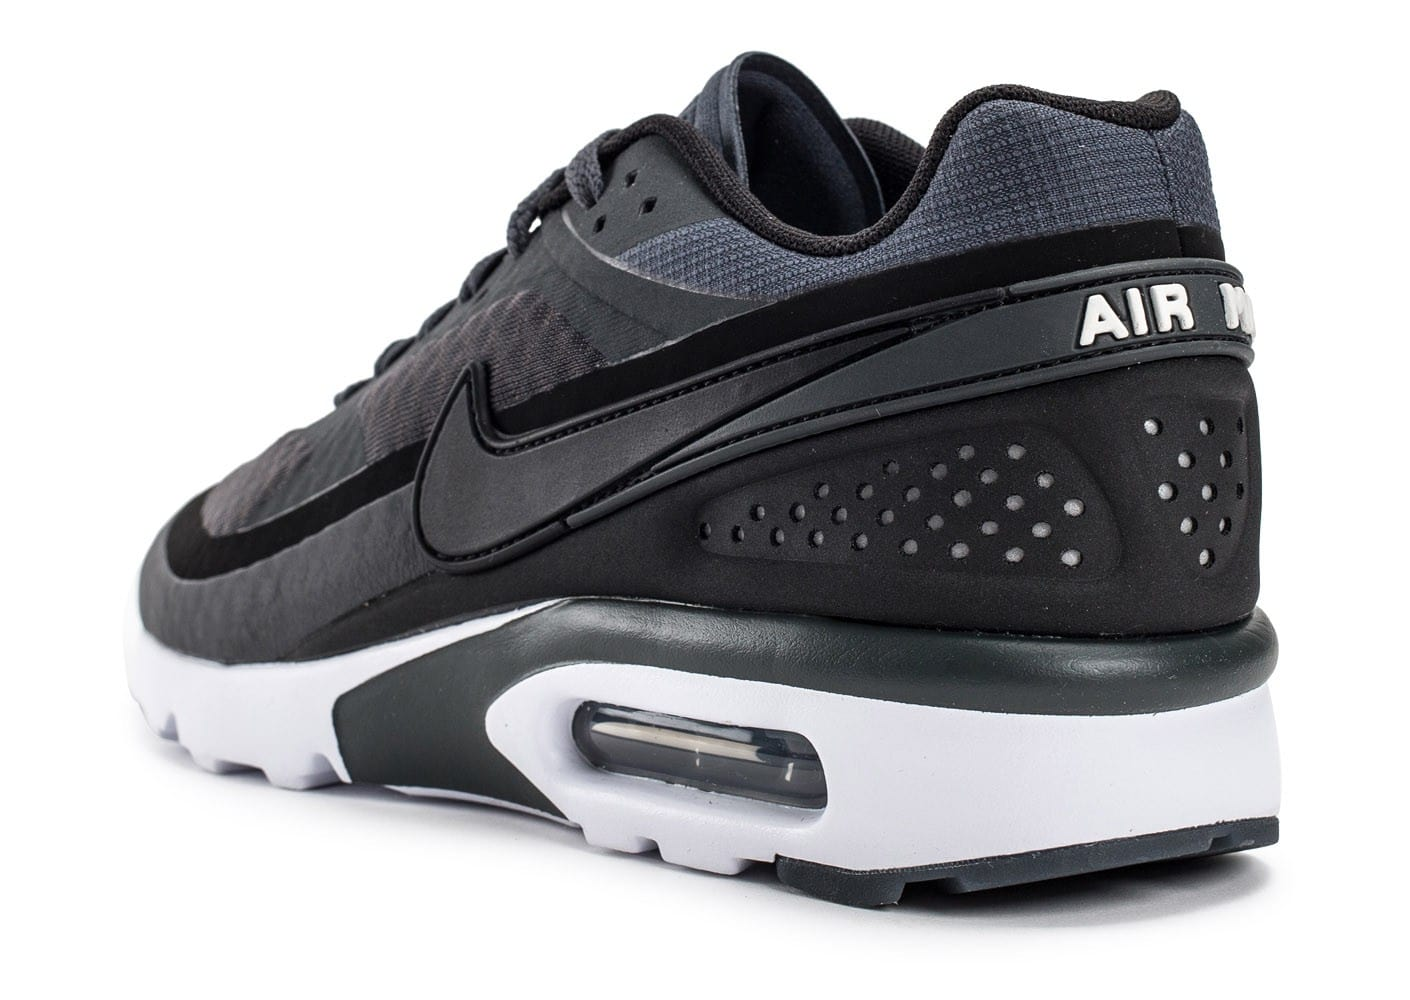 brand new cdd5b 0844d ... chaussures nike air max bw ultra anthracite vue arriere